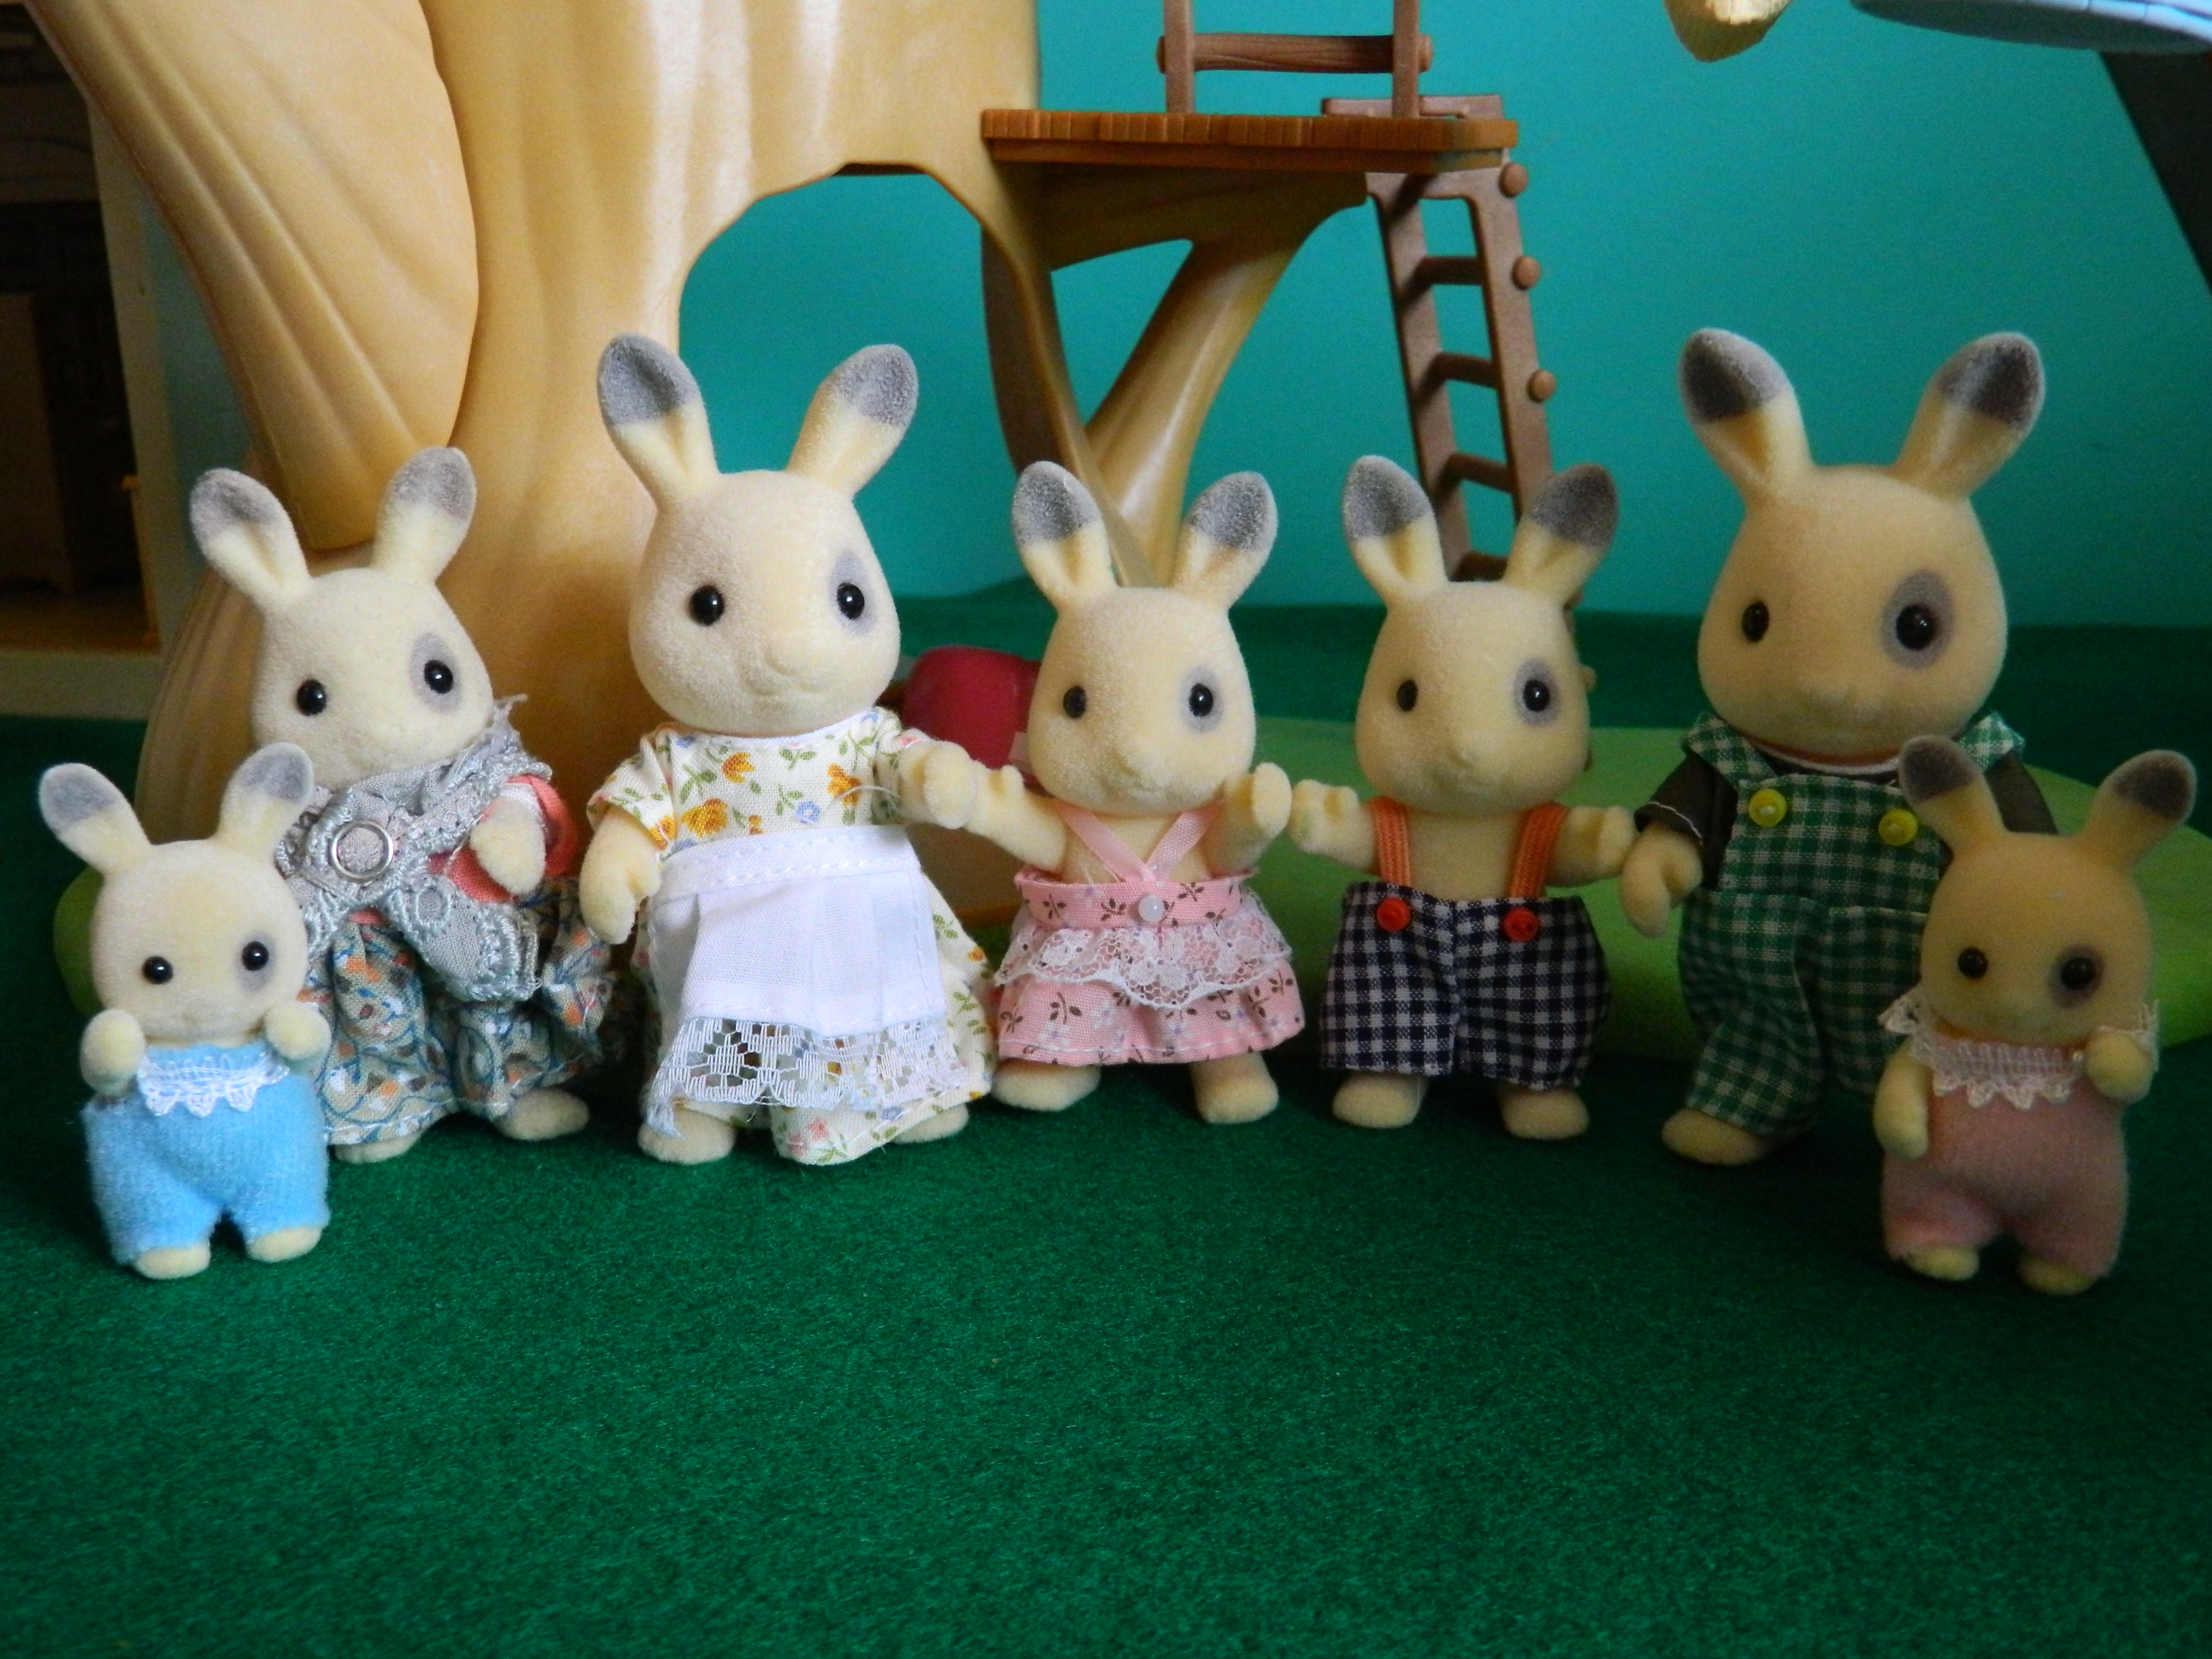 1989 Corntop rabbits. ltr flair version. USA tomy granmother